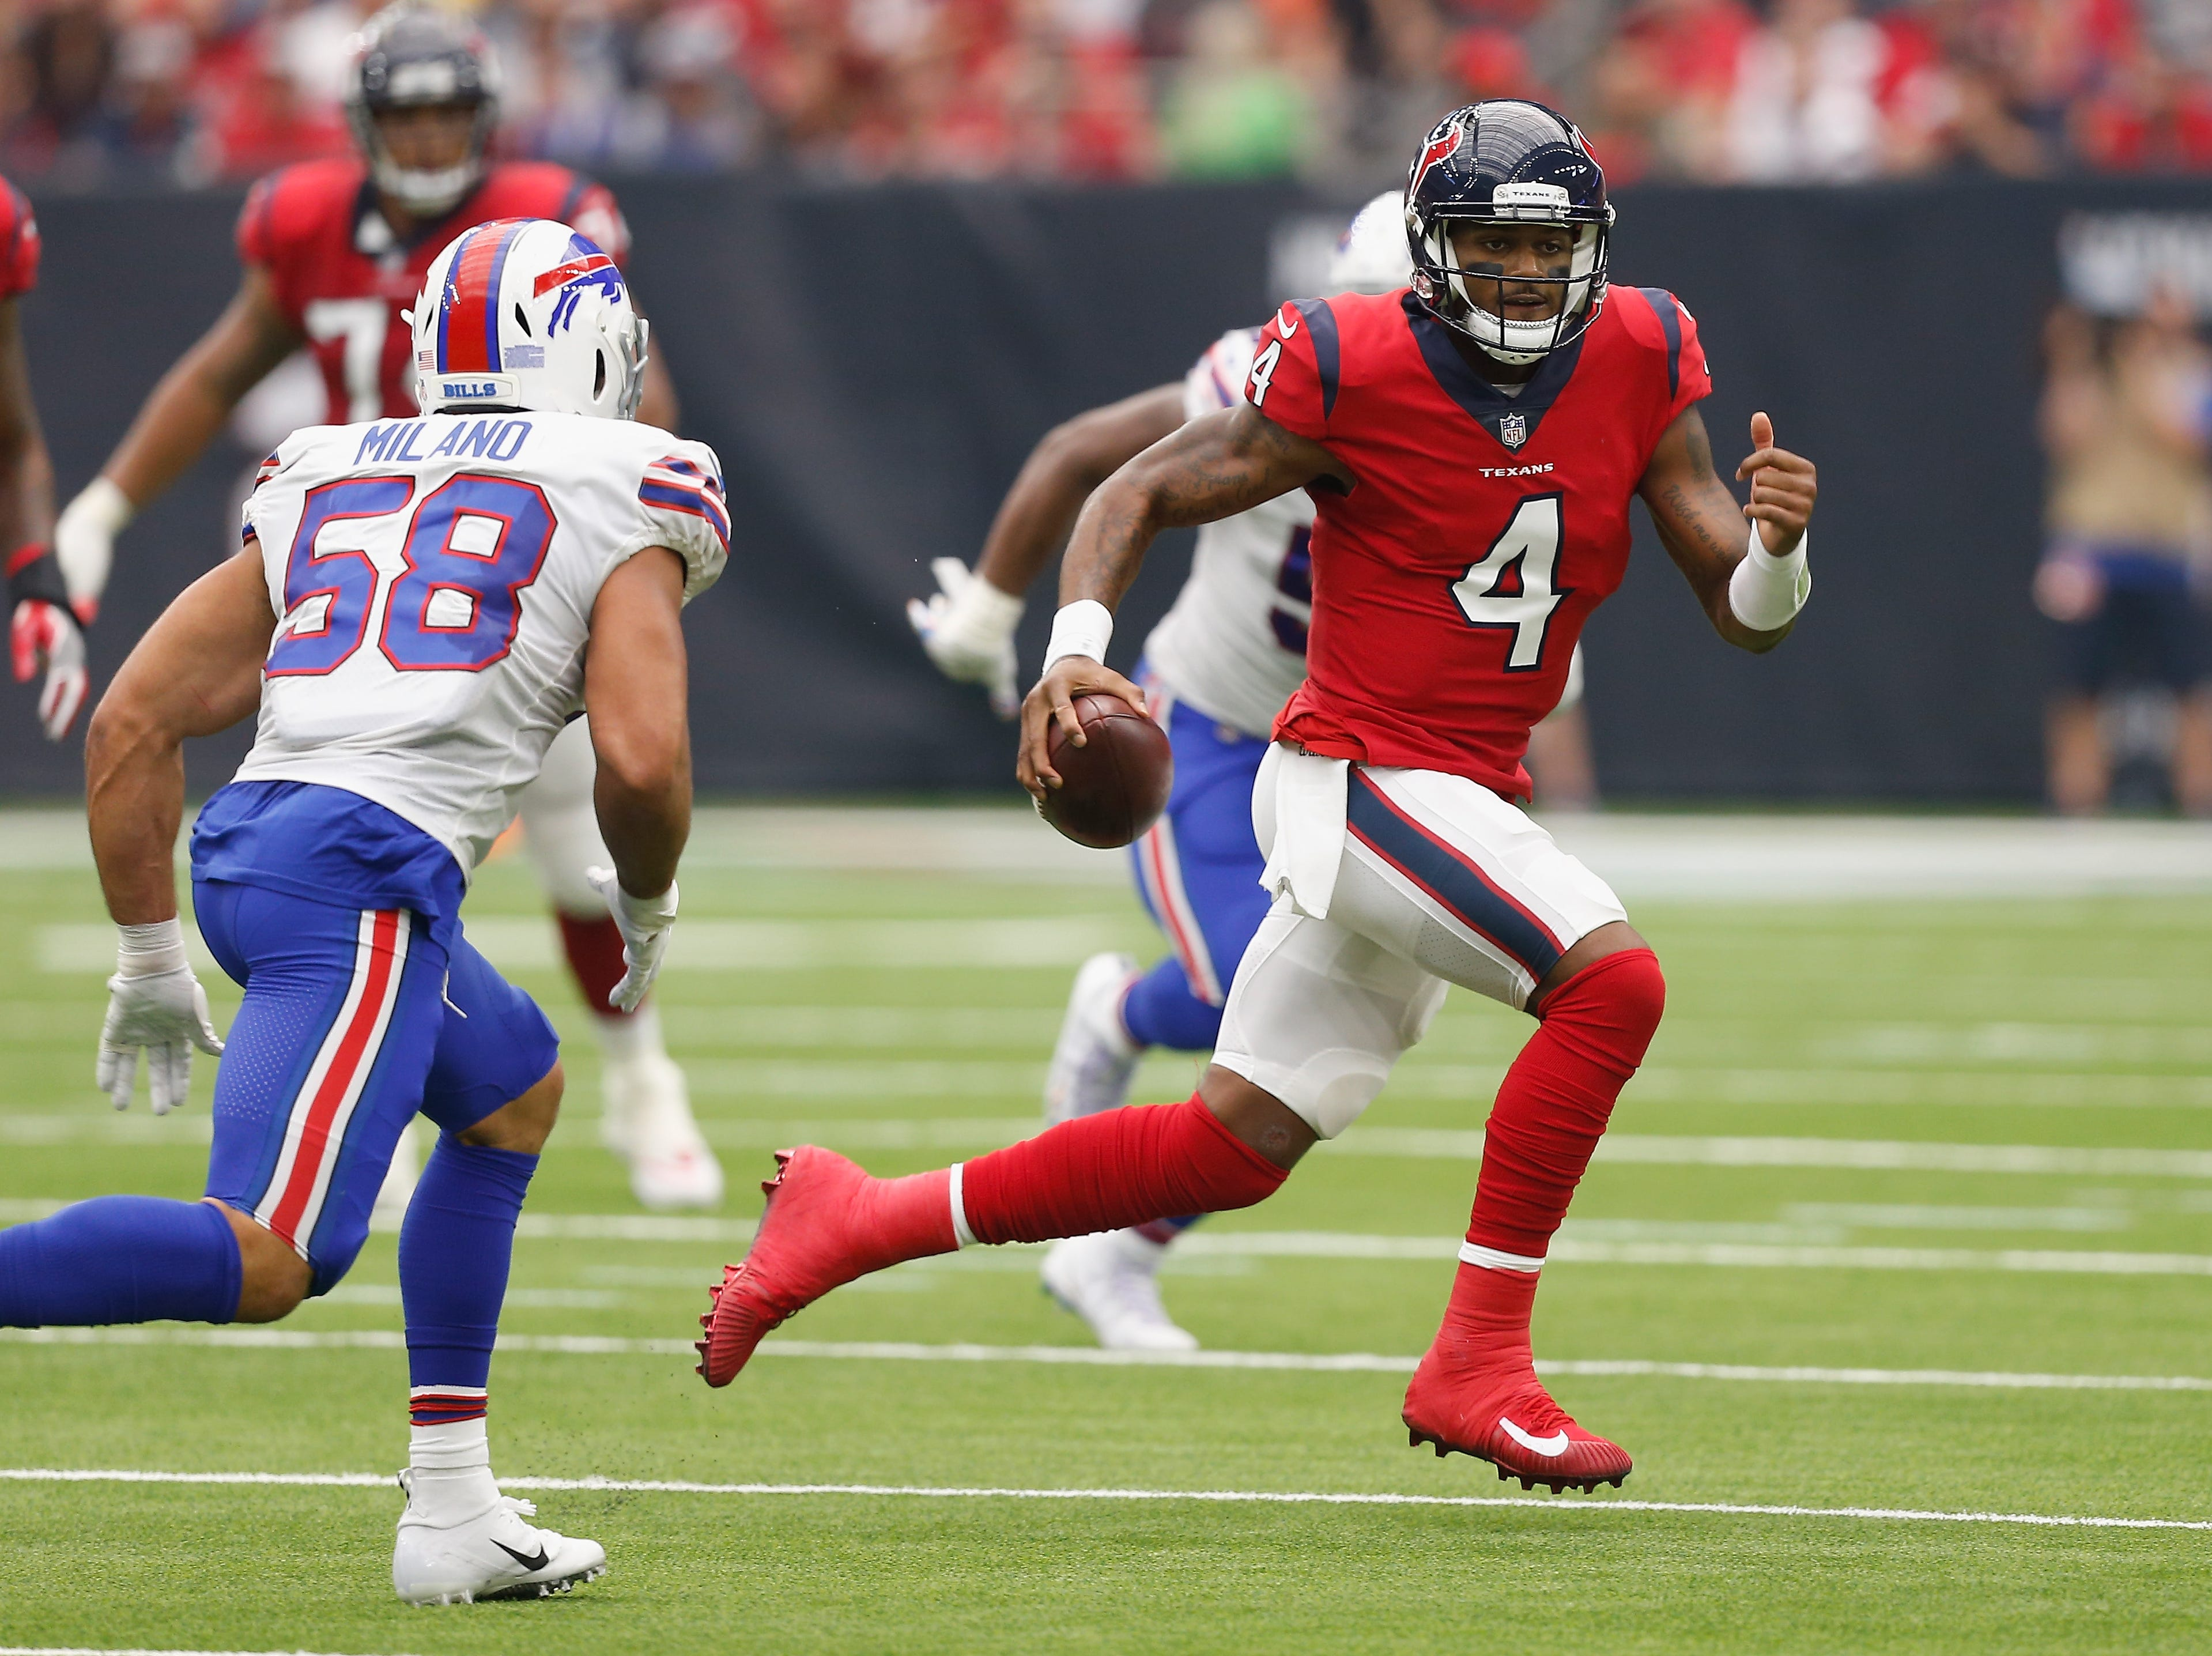 HOUSTON, TX - OCTOBER 14:  Deshaun Watson #4 of the Houston Texans scrambles pressured by Matt Milano #58 of the Buffalo Bills in the second quarter at NRG Stadium on October 14, 2018 in Houston, Texas.  (Photo by Bob Levey/Getty Images)